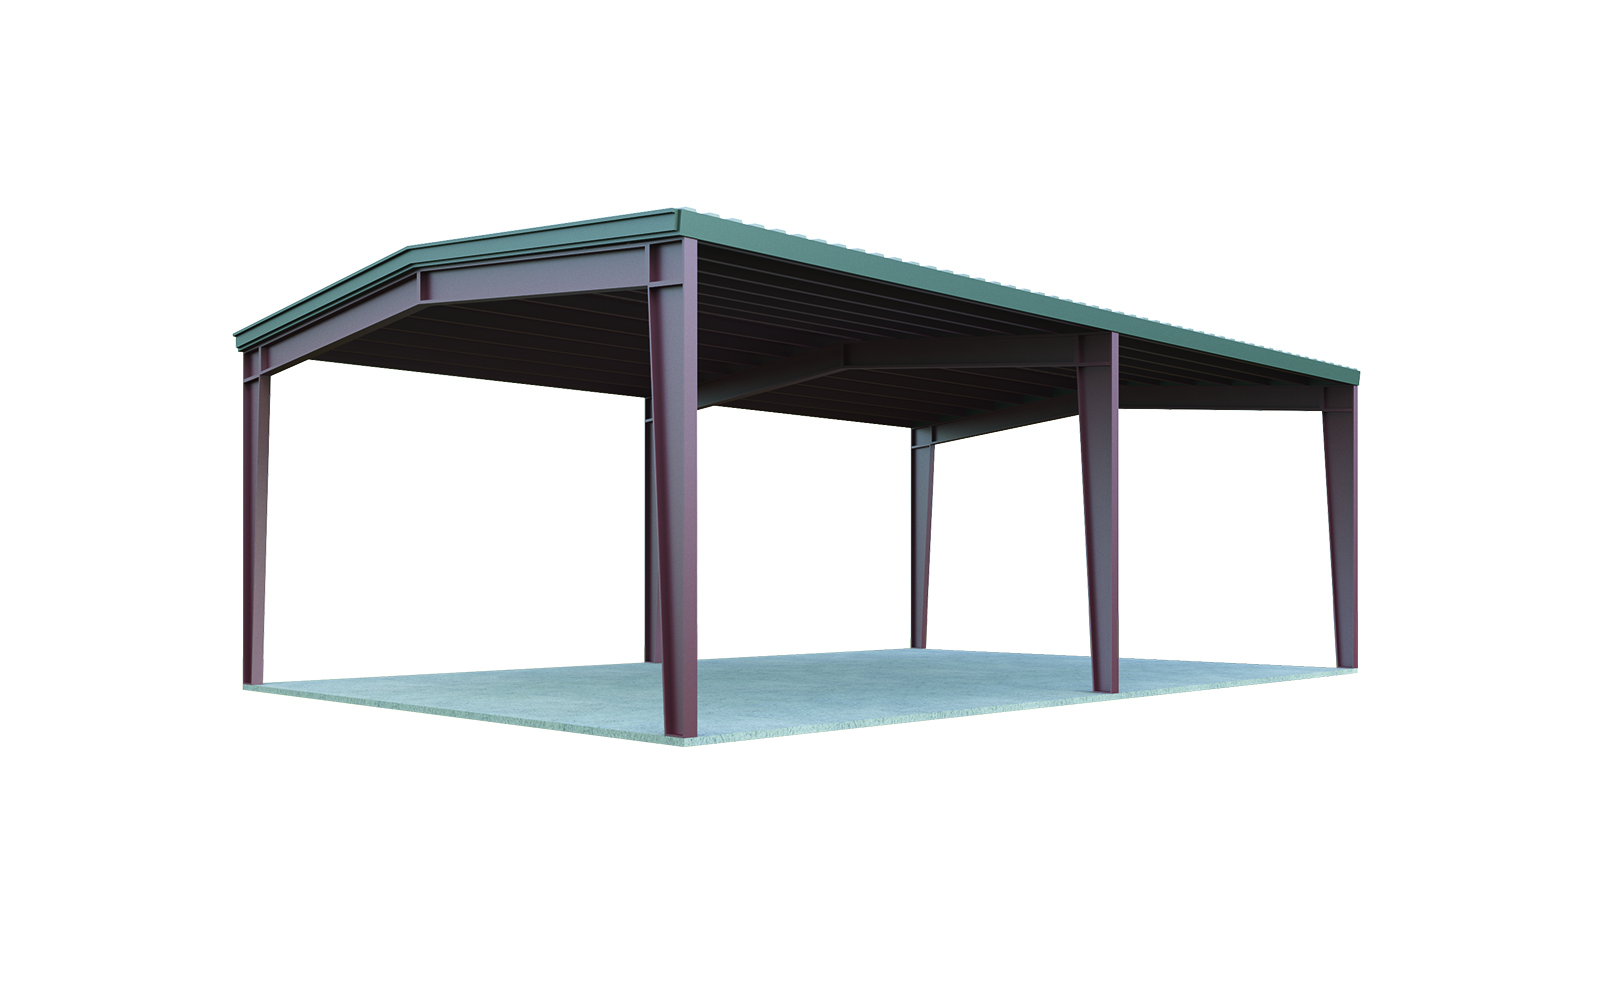 Zeichnung Carport 20x30 Carport Perfect For Cars Or Motorhome General Steel Shop